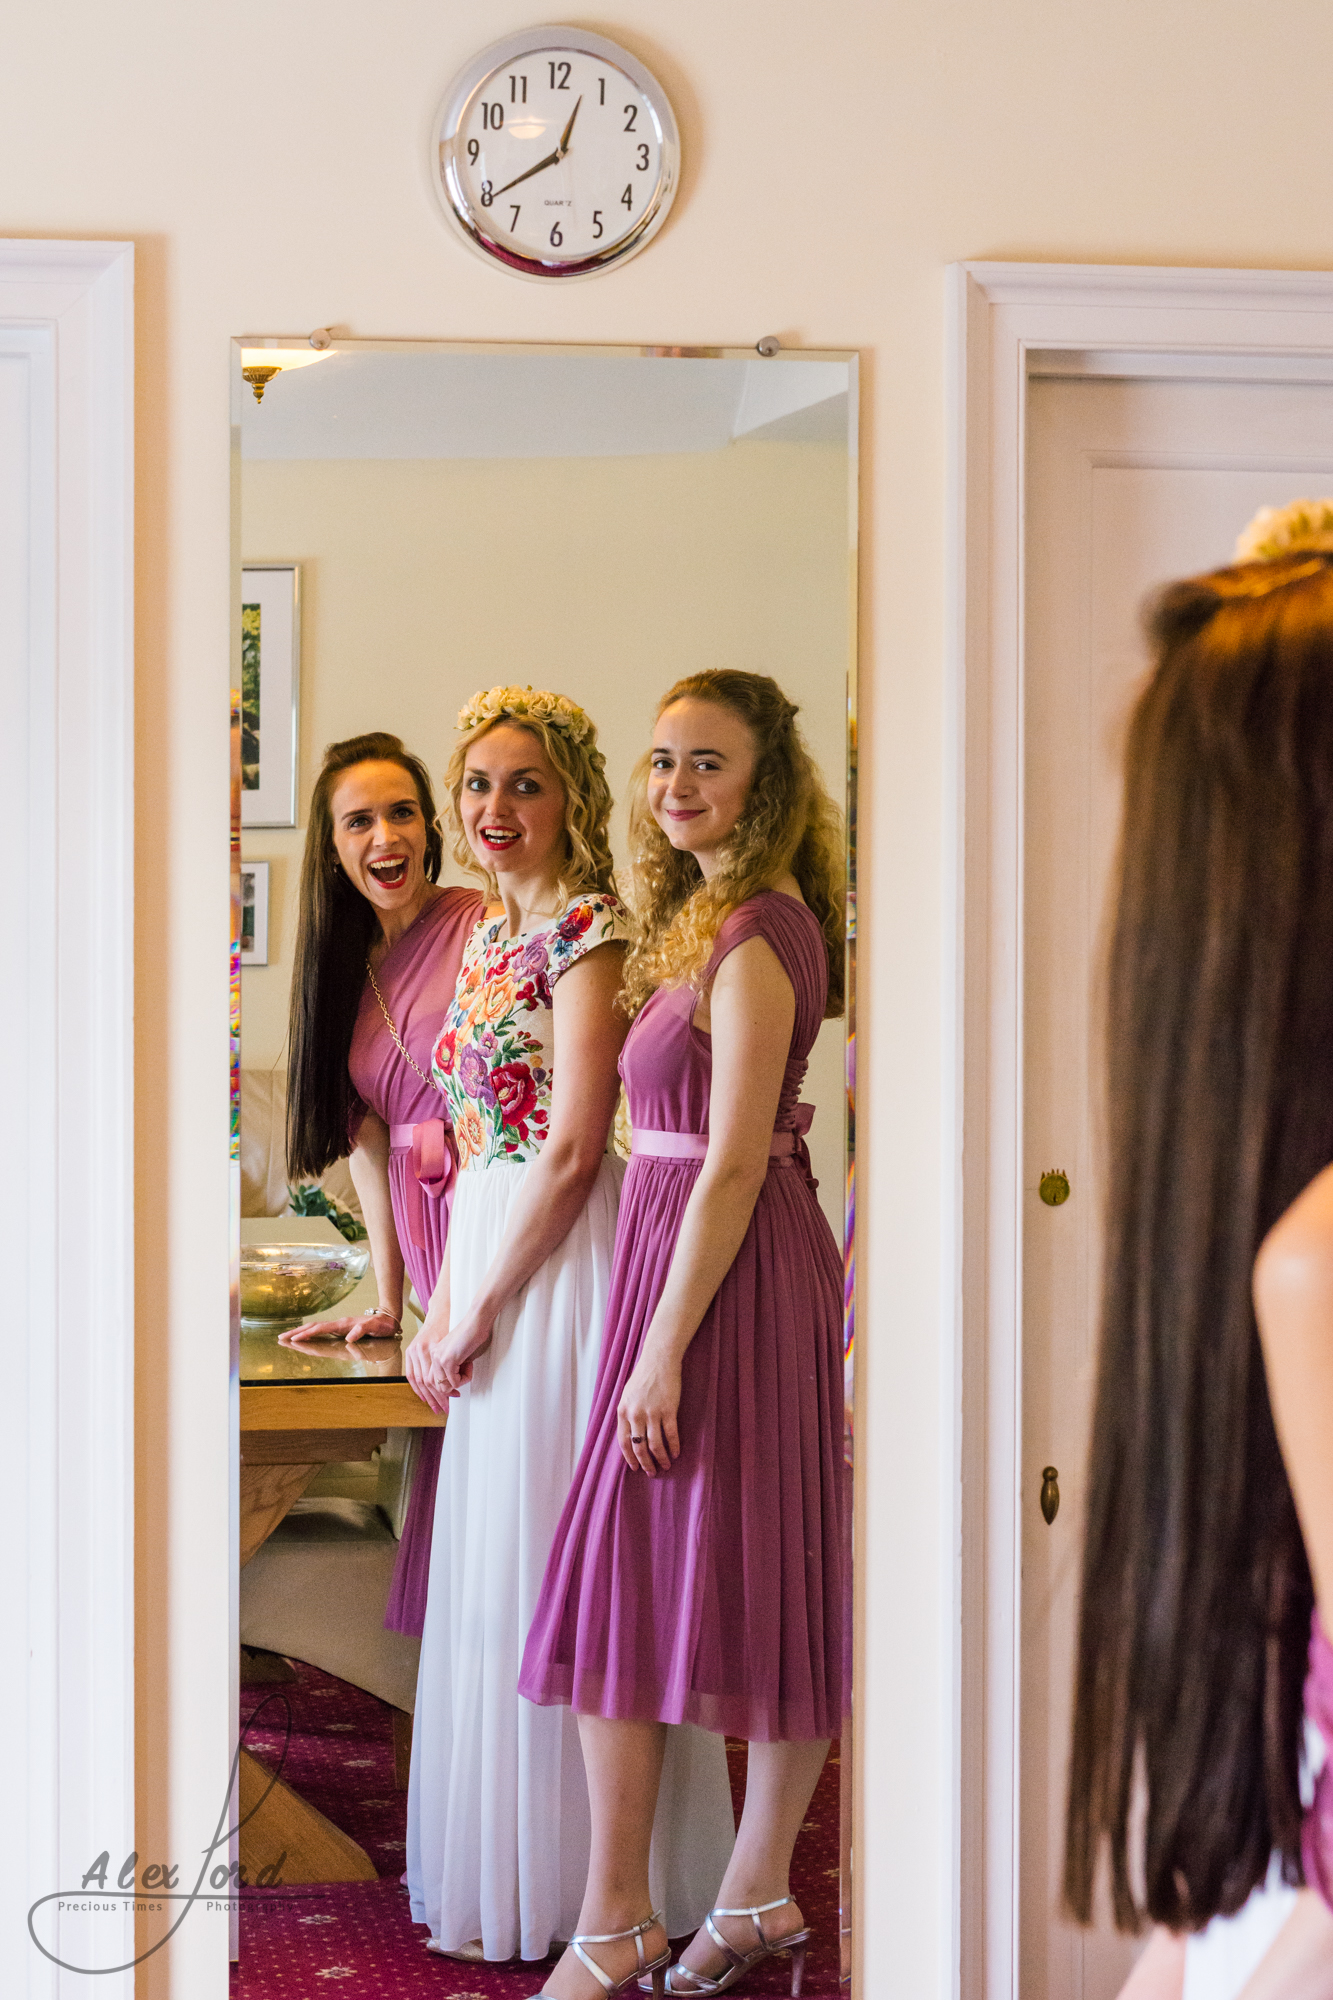 The bride and bridesmaids dressed in dusky pink line up ready to enter the wedding ceremony room